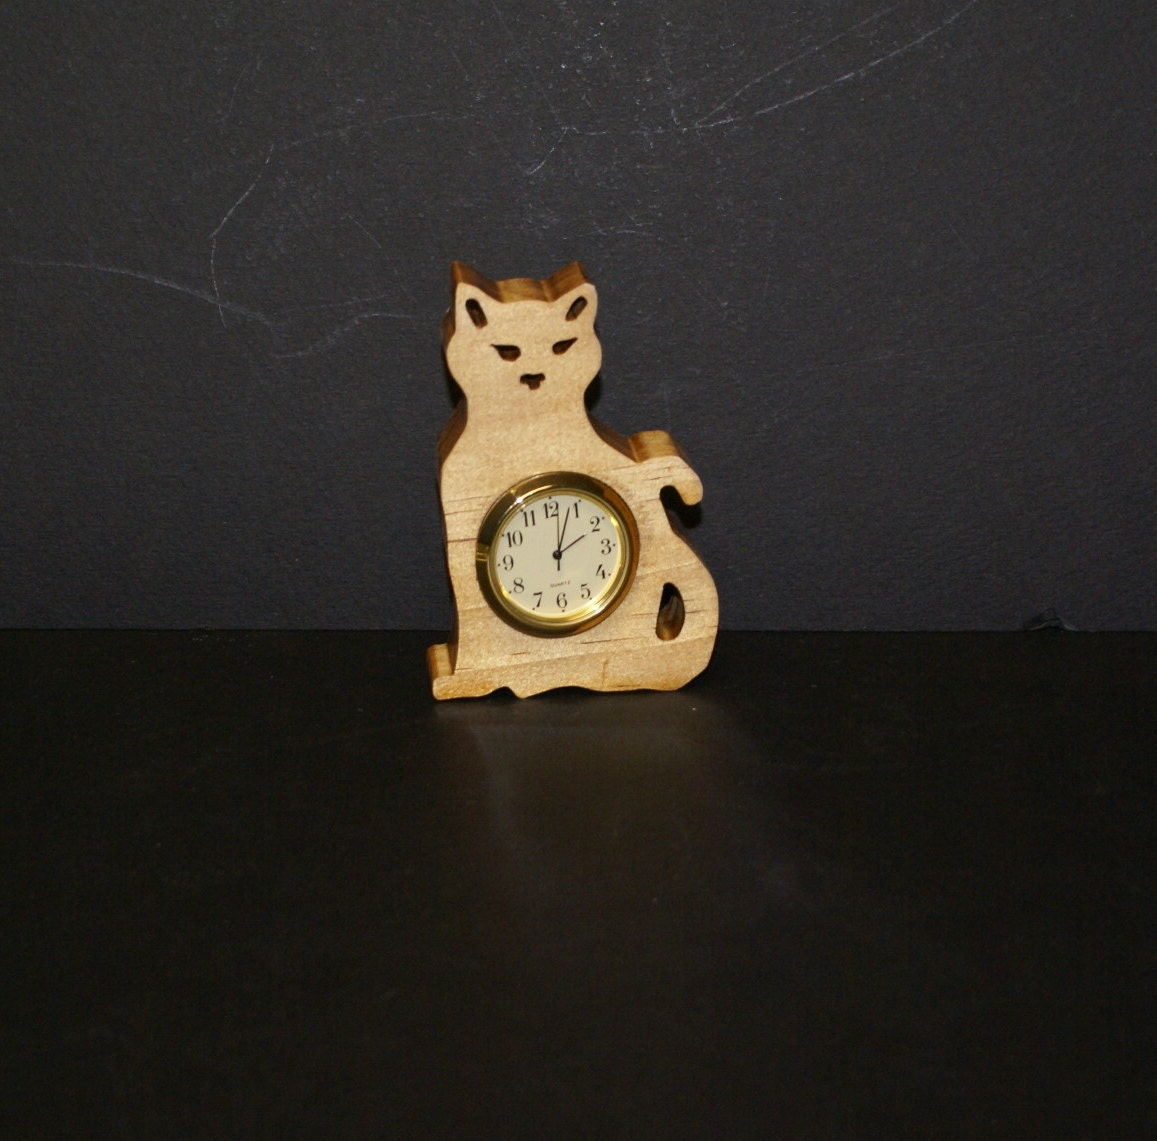 Kitty cat wood shelf sitter clock - Kitty cat clock ...